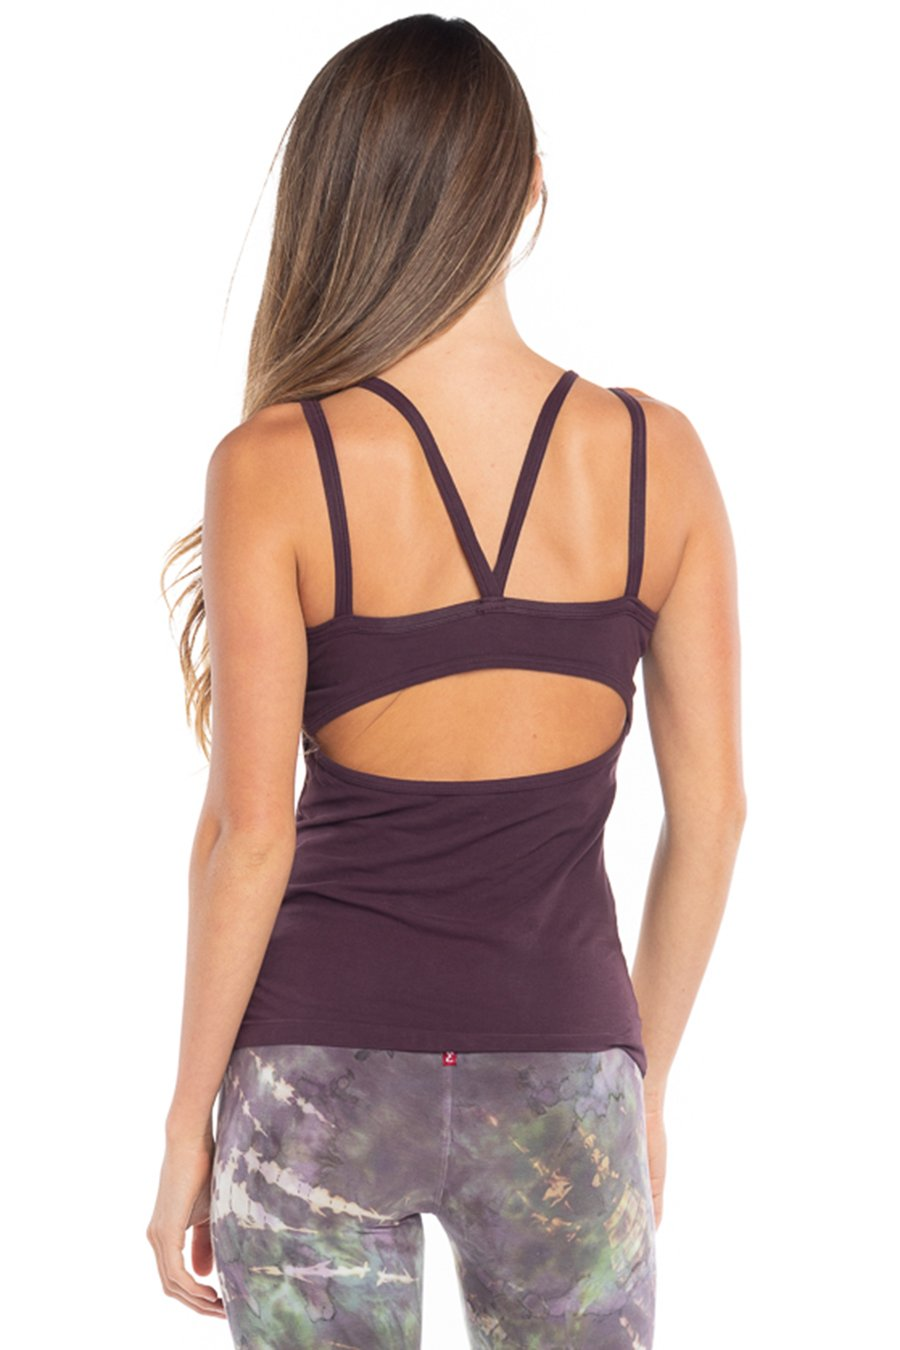 Hard Tail Forever Eagle Eye Tank Top - Red Plum - L